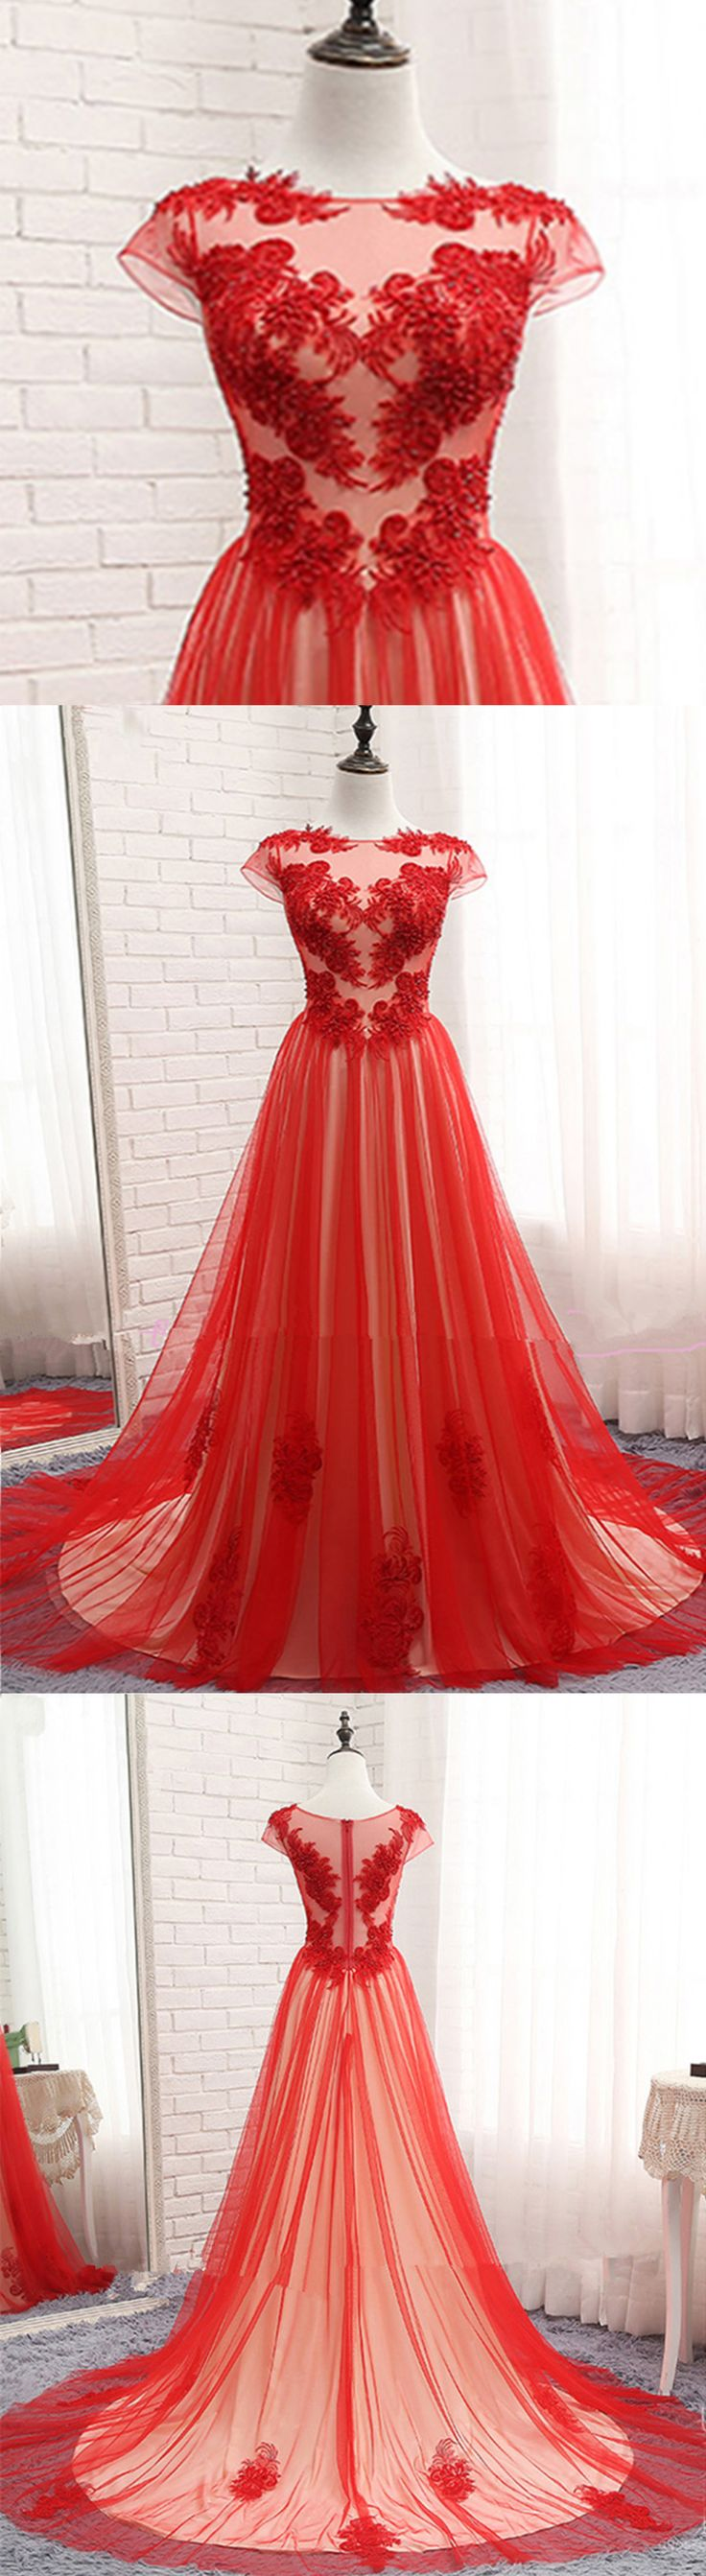 Modest Prom Dress, Red Tulle Prom Dress, Lace Appliqued Long Evening Gown for Teens #promdress #promdresses #prom #dress #gowns